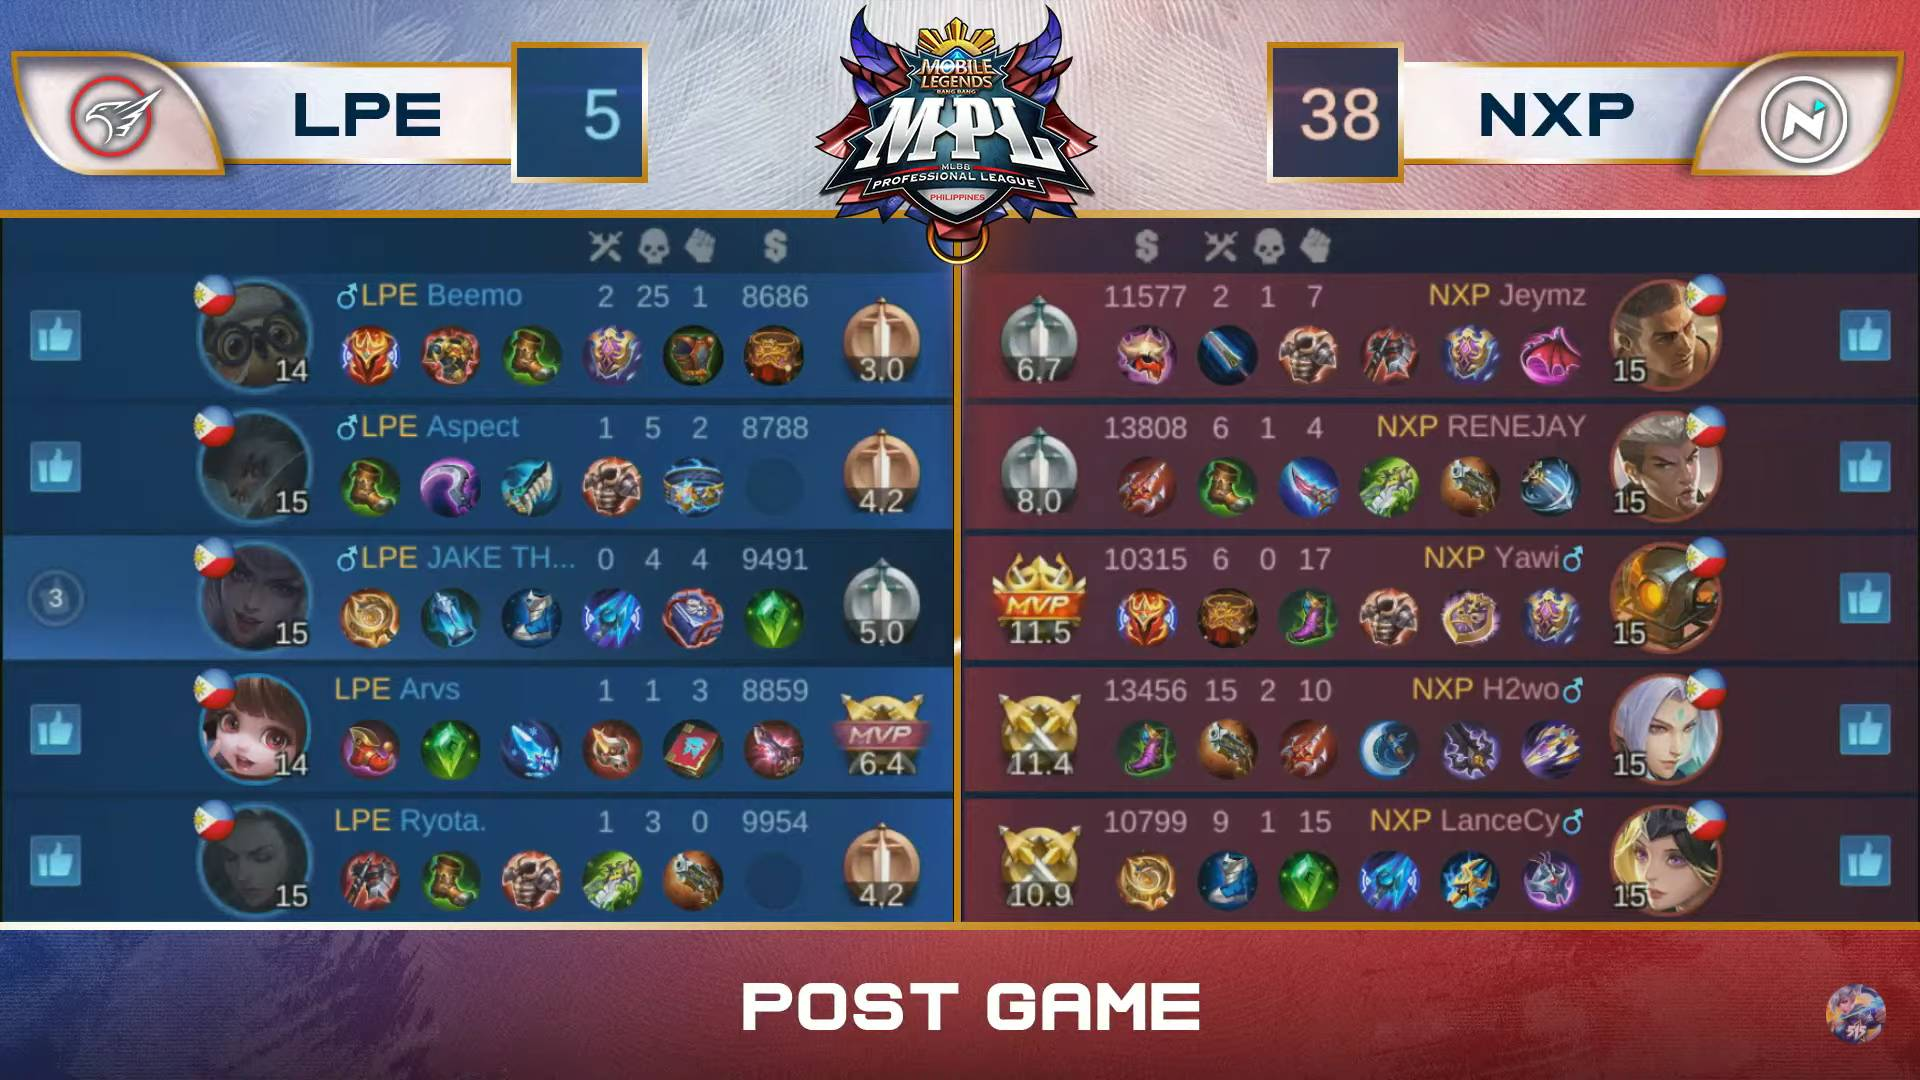 MPL-PH-Season-7-NXP-def-Playbook-Game-3 RENEJAY sits out Game 1 vs Playbook, then leads NXP to dramatic win in MPL-PH ESports Mobile Legends MPL-PH News  - philippine sports news